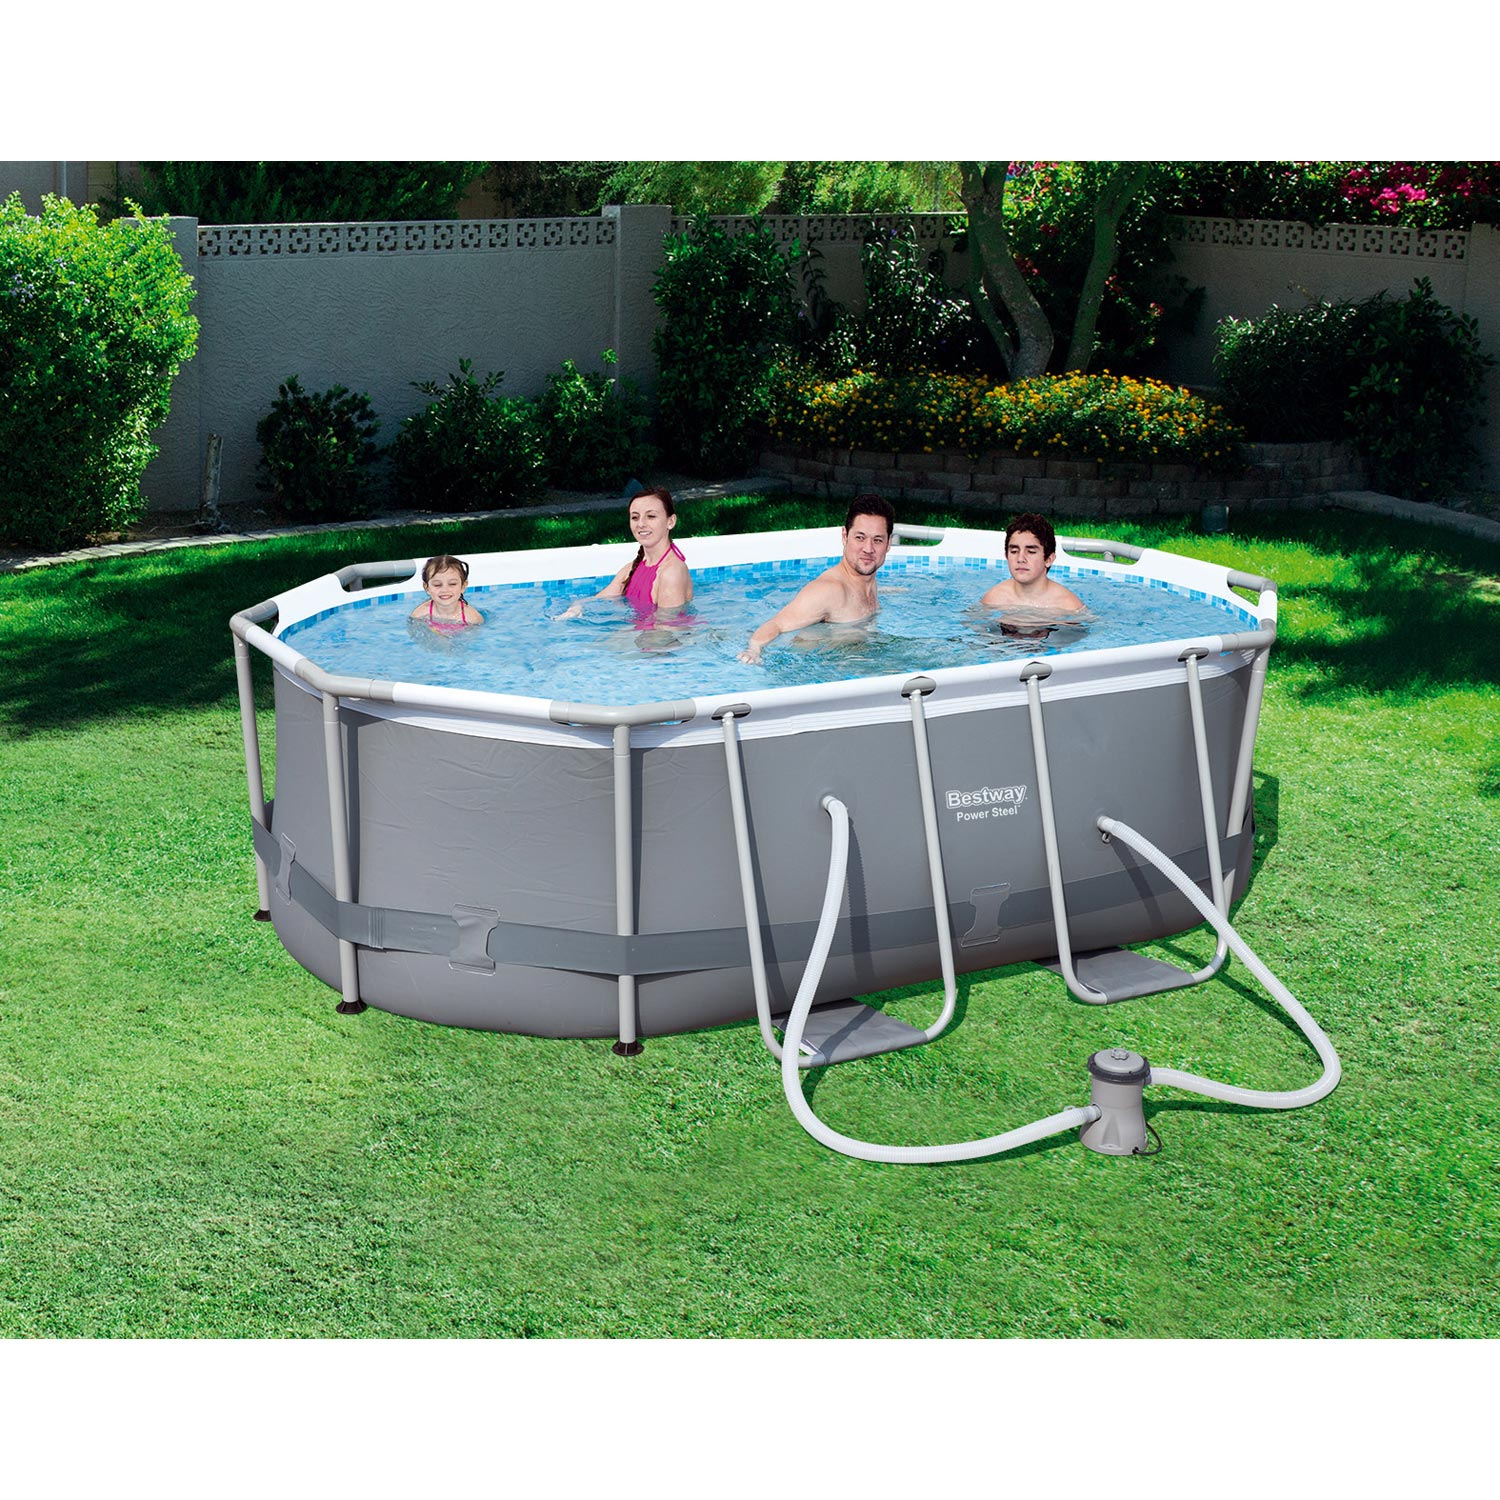 Piscine hors sol autoportante tubulaire bestway l 3 x l 2 for Piscine hors sol rectangulaire 4x3